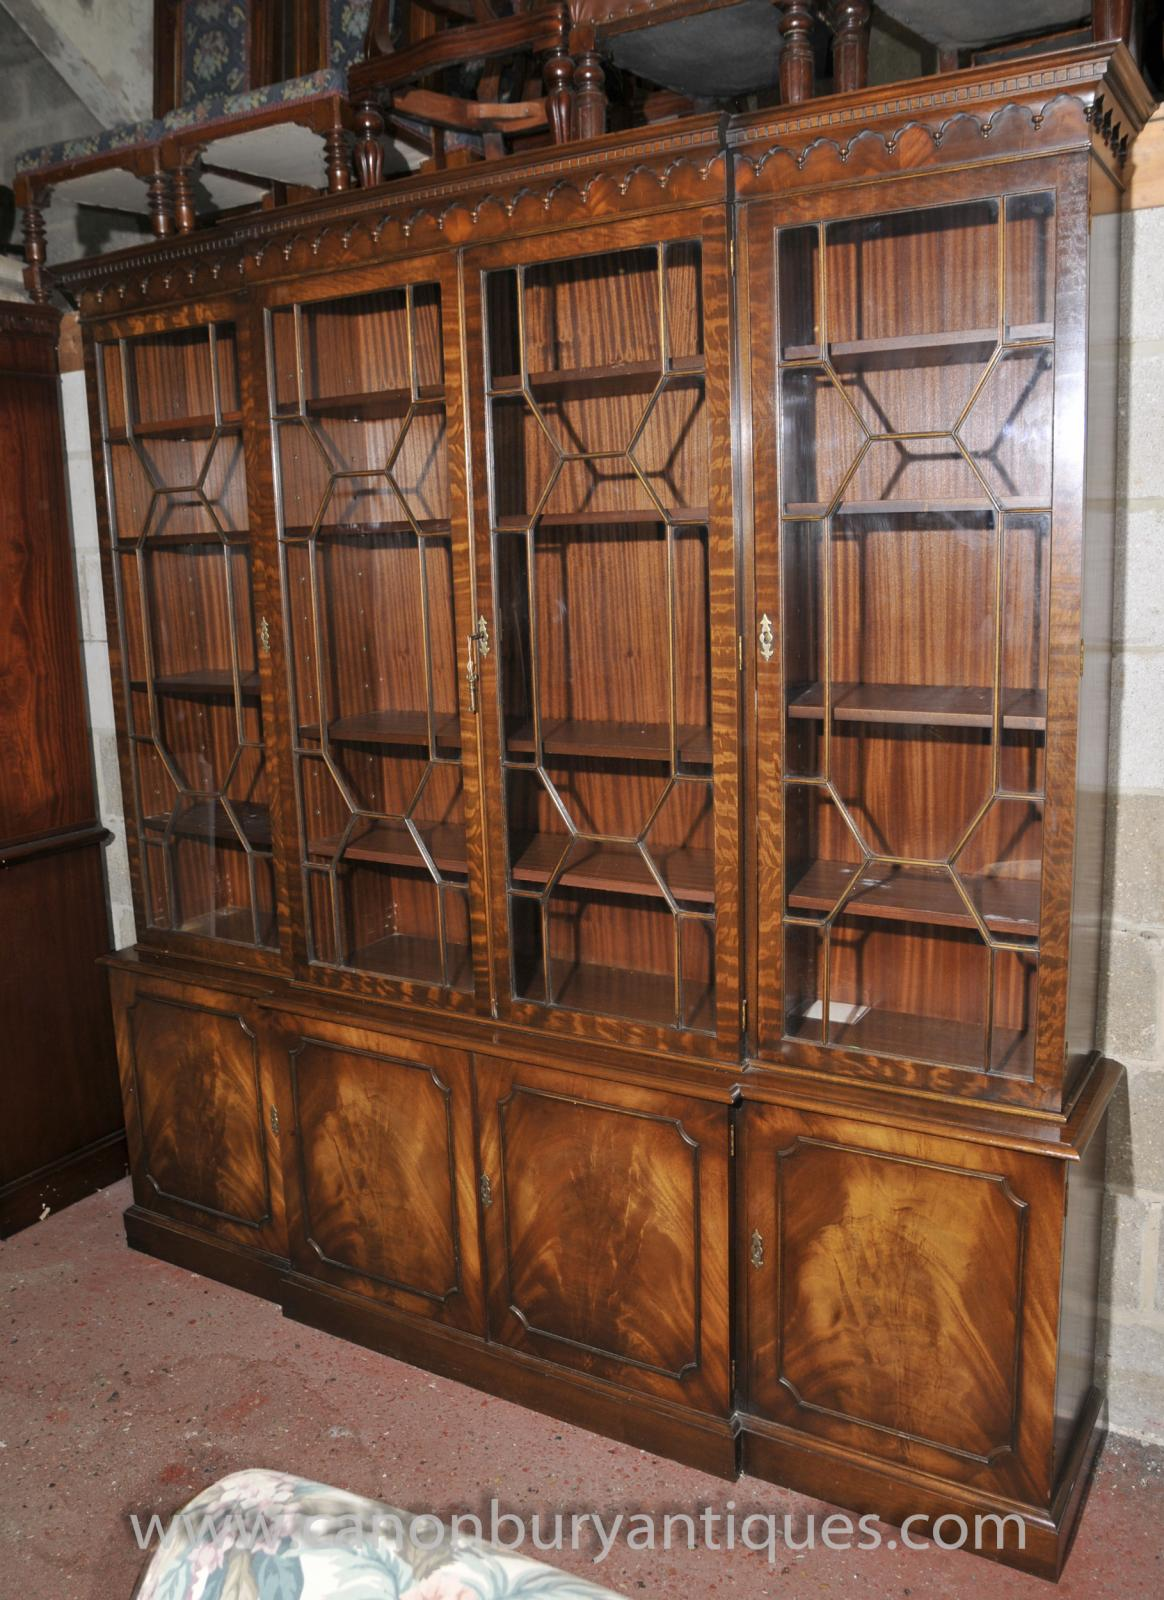 Store Categories - Victorian Breakfront Bookcase Shelf Unit Display Cabinet Mahogany